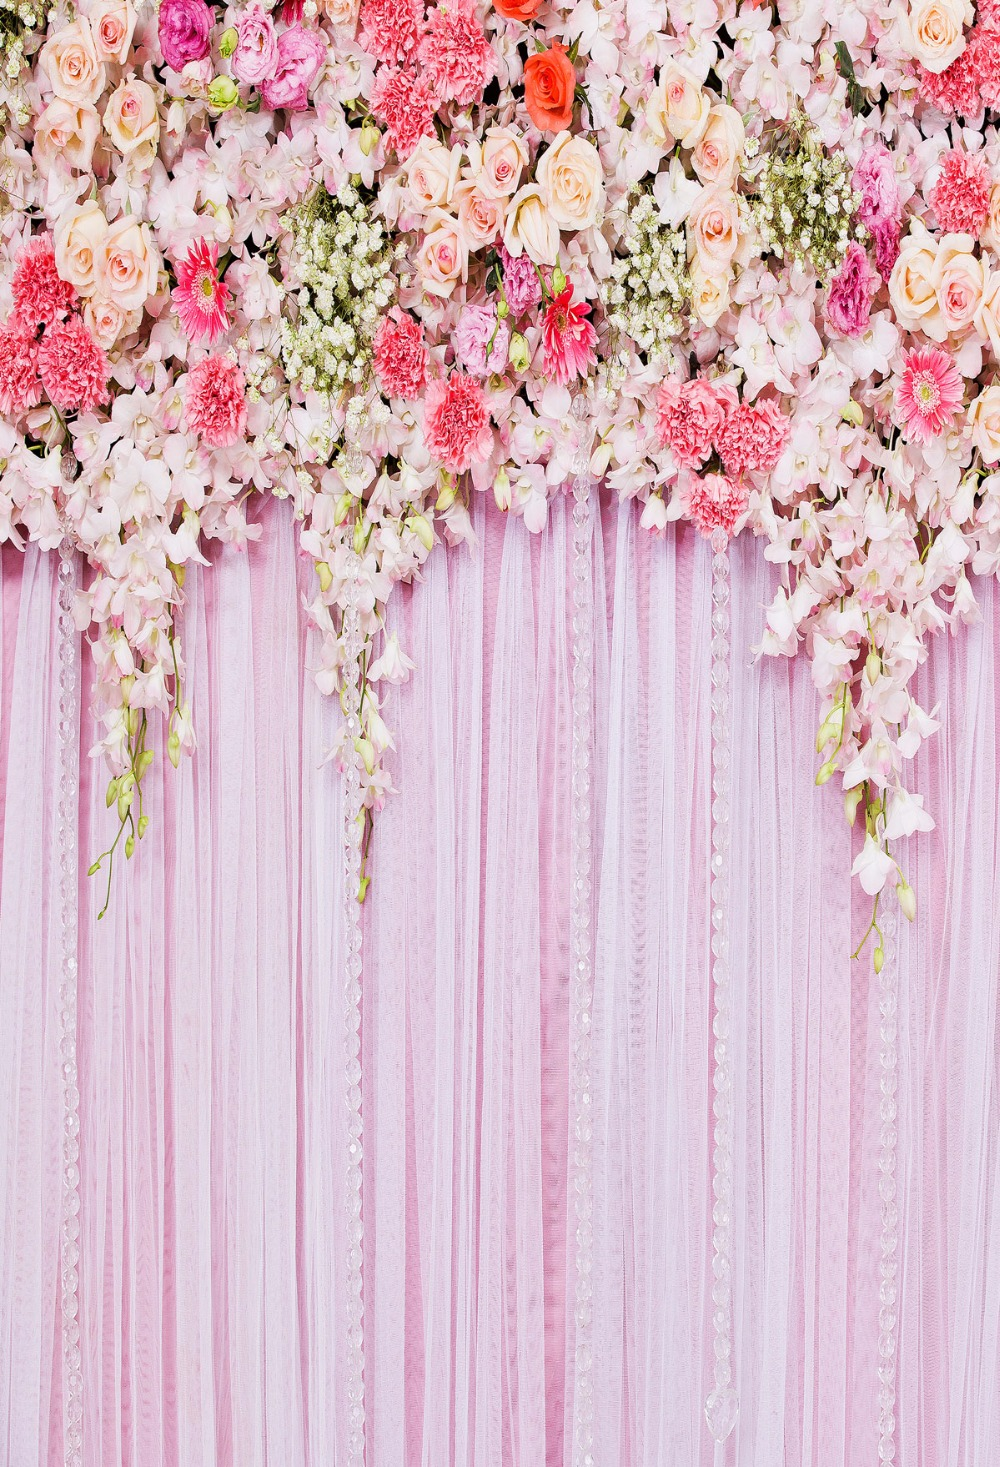 Kate wedding backdrops photo background flower wedding backdrop kate wedding backdrops photo background flower wedding backdrop flower pink curtain romantic backgrounds pastel pink background in background from consumer mightylinksfo